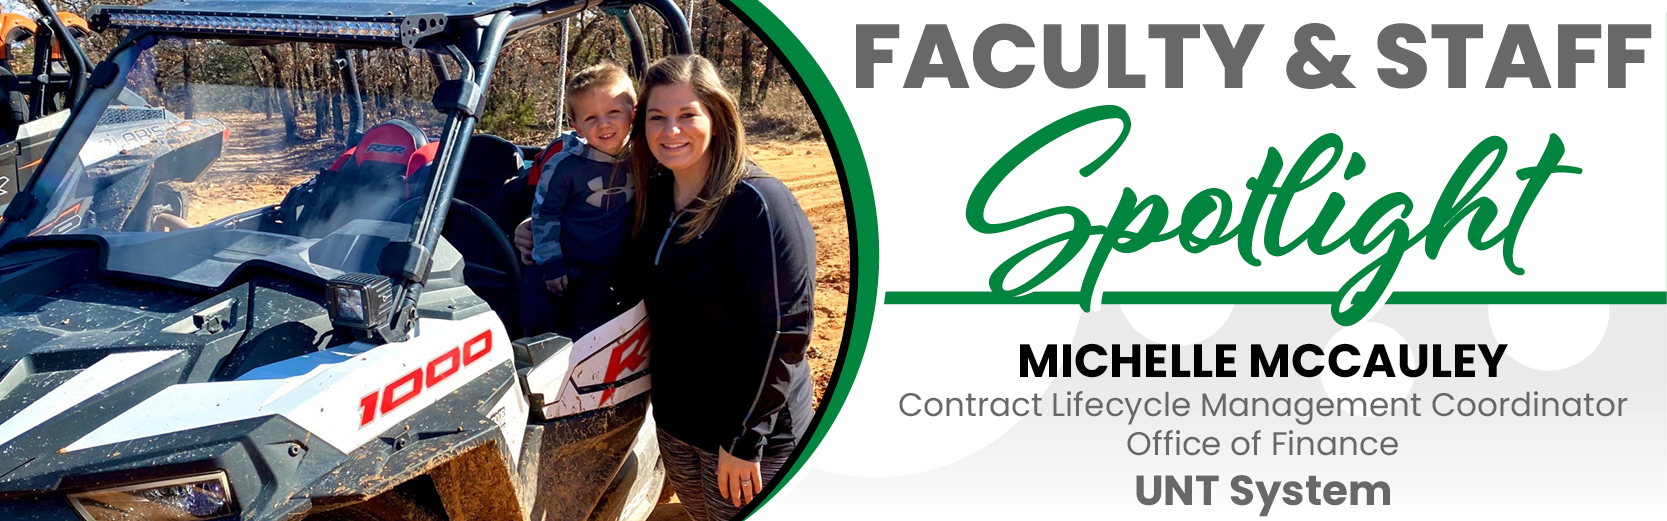 Faculty & Staff Spotlight: Michelle McCauley, Contract Lifecycle Management Coordinator, Office of Finance, UNT System